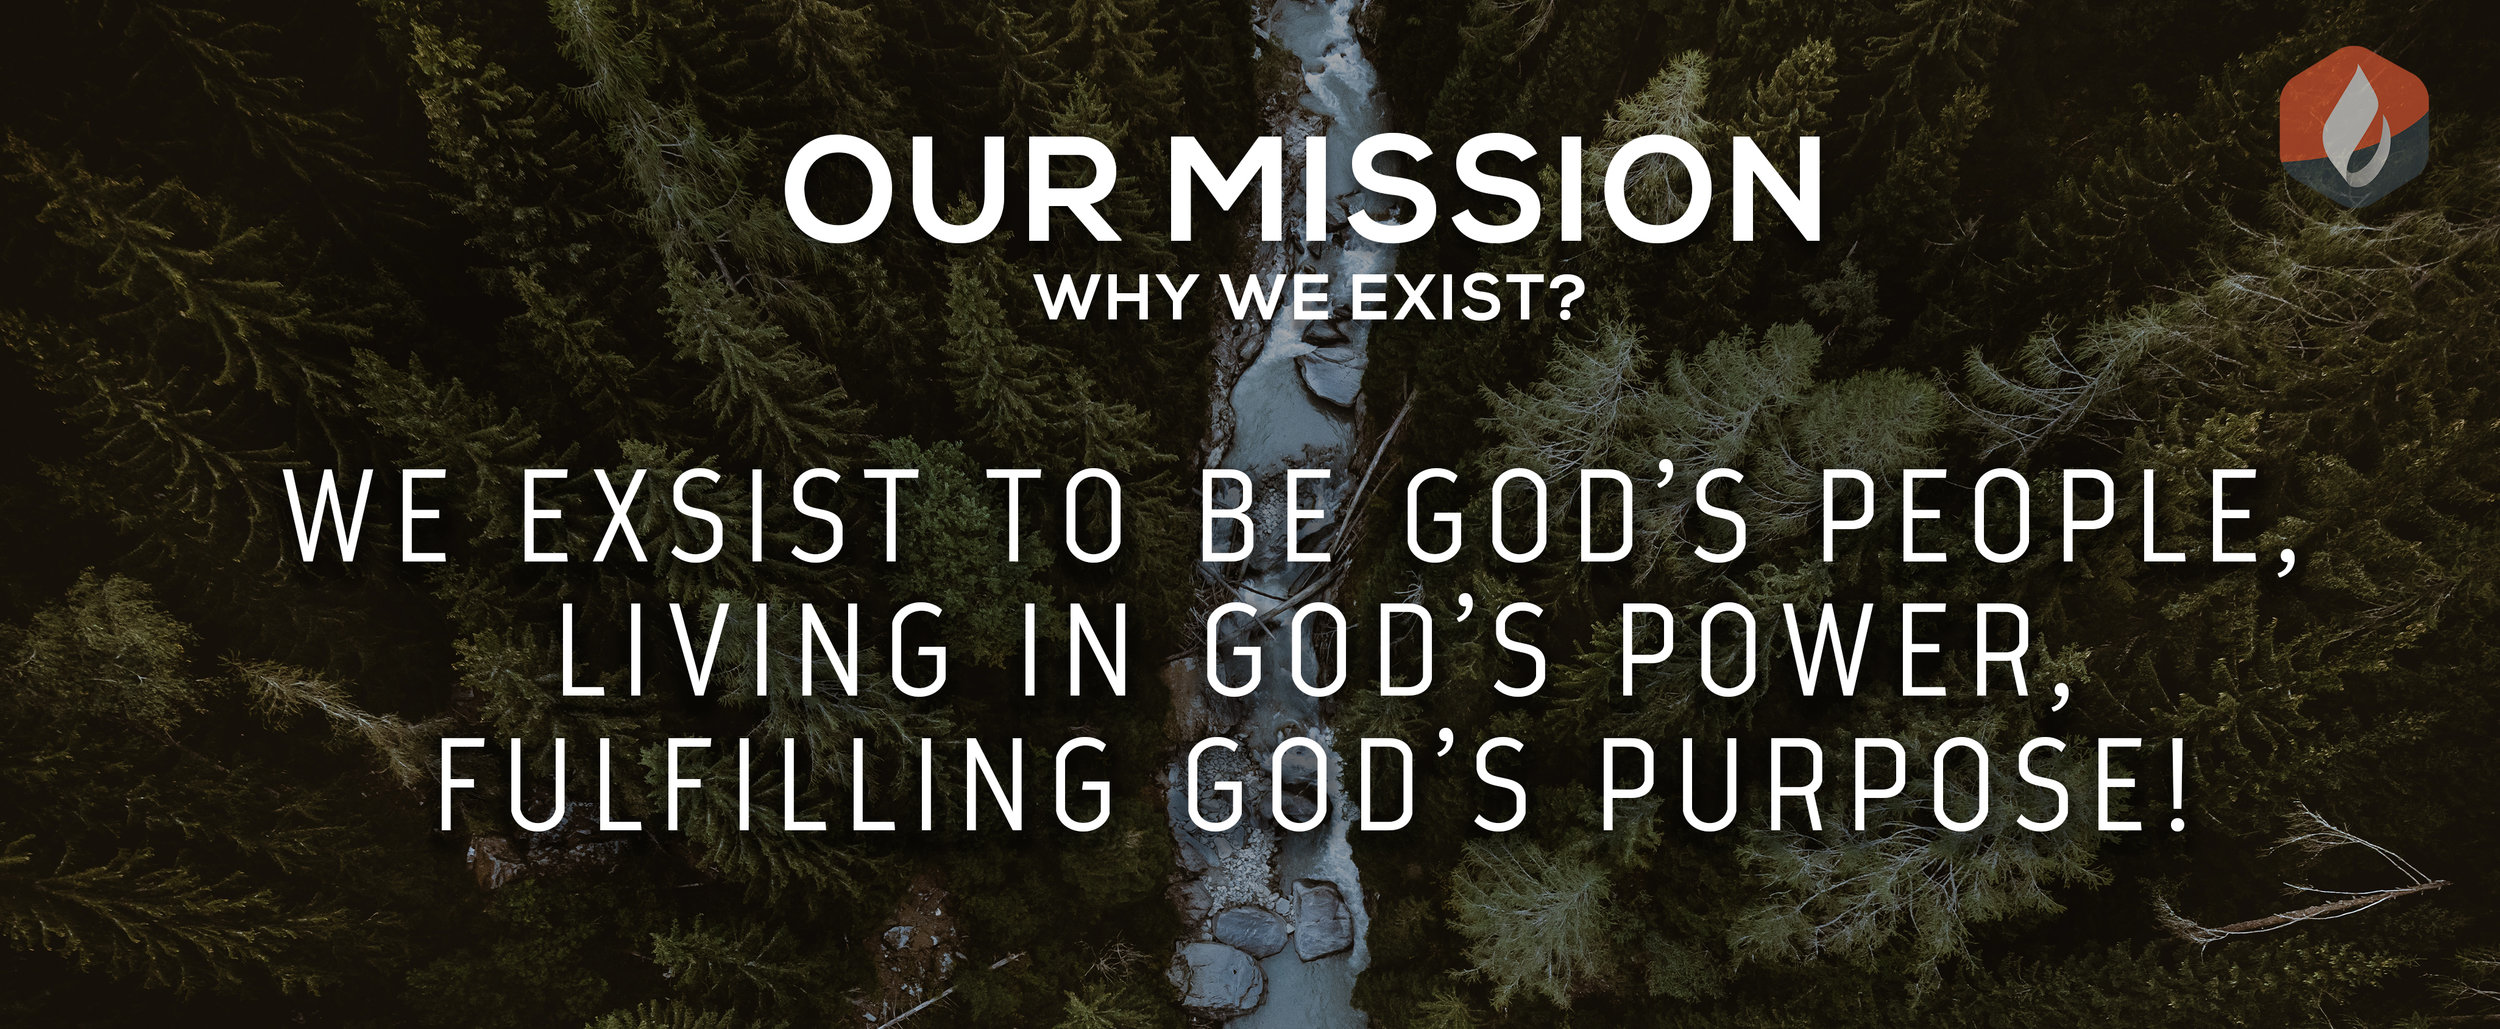 Our Mission Banner.jpg